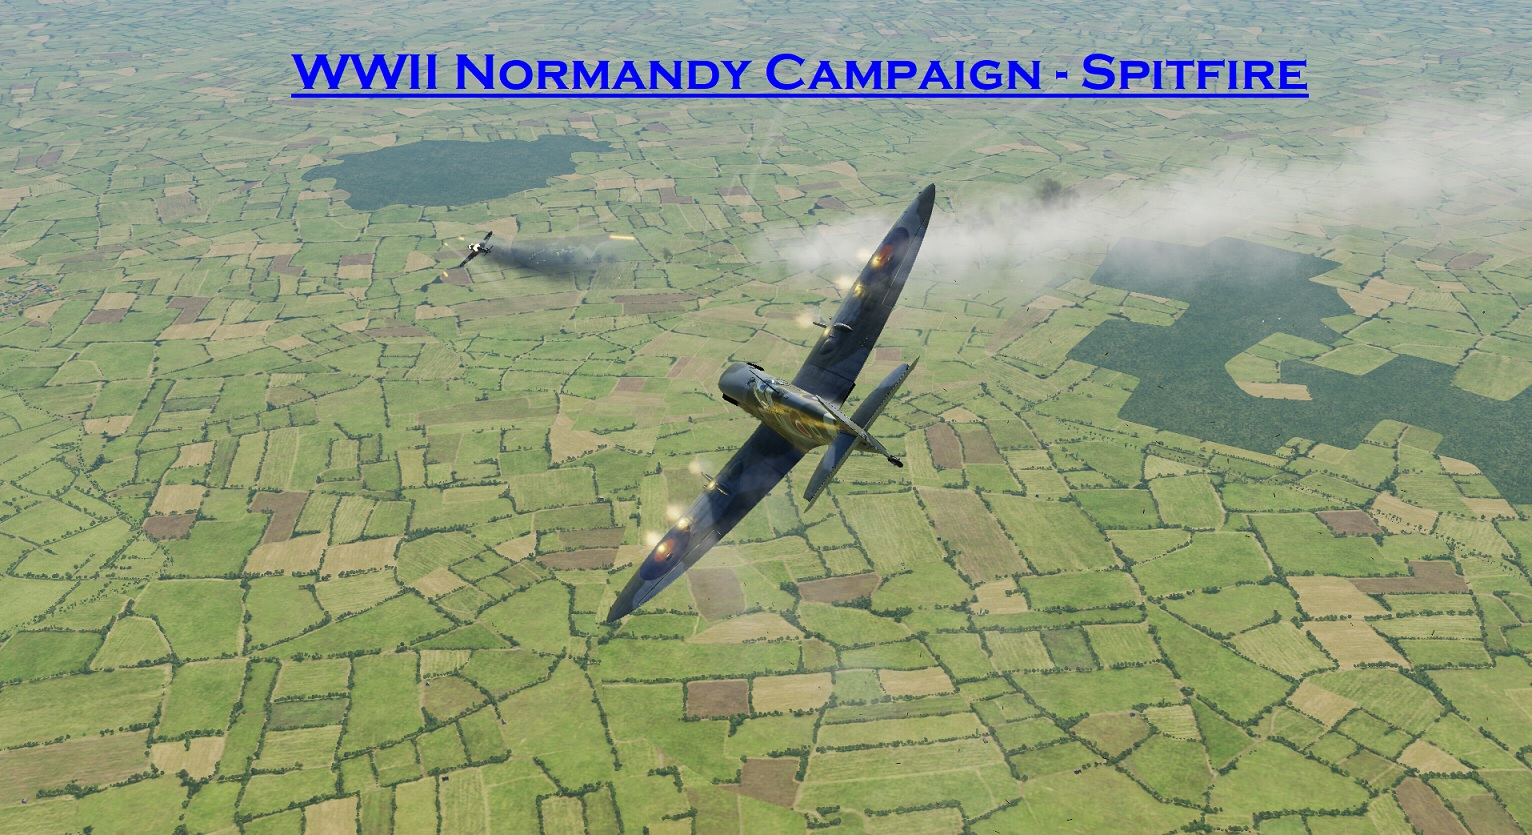 WWII Normandy Spitfire using Mbot Dynamic Campaign Engine